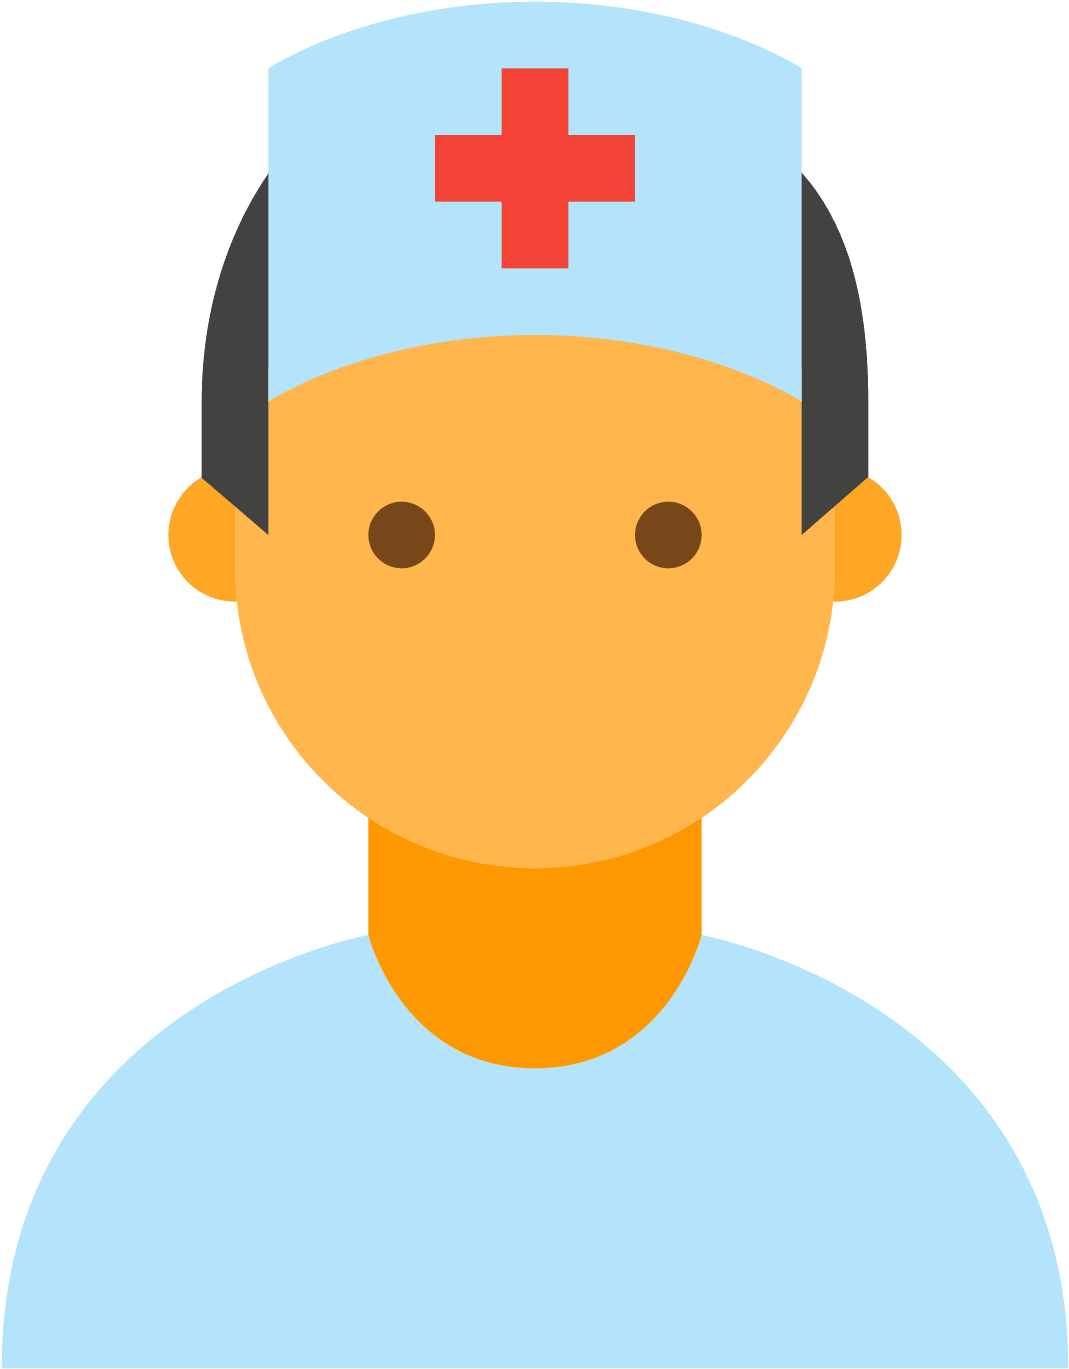 Nurse Clipart Staff Nurse Icon Doctor Png Transparent Cartoon Jing Fm